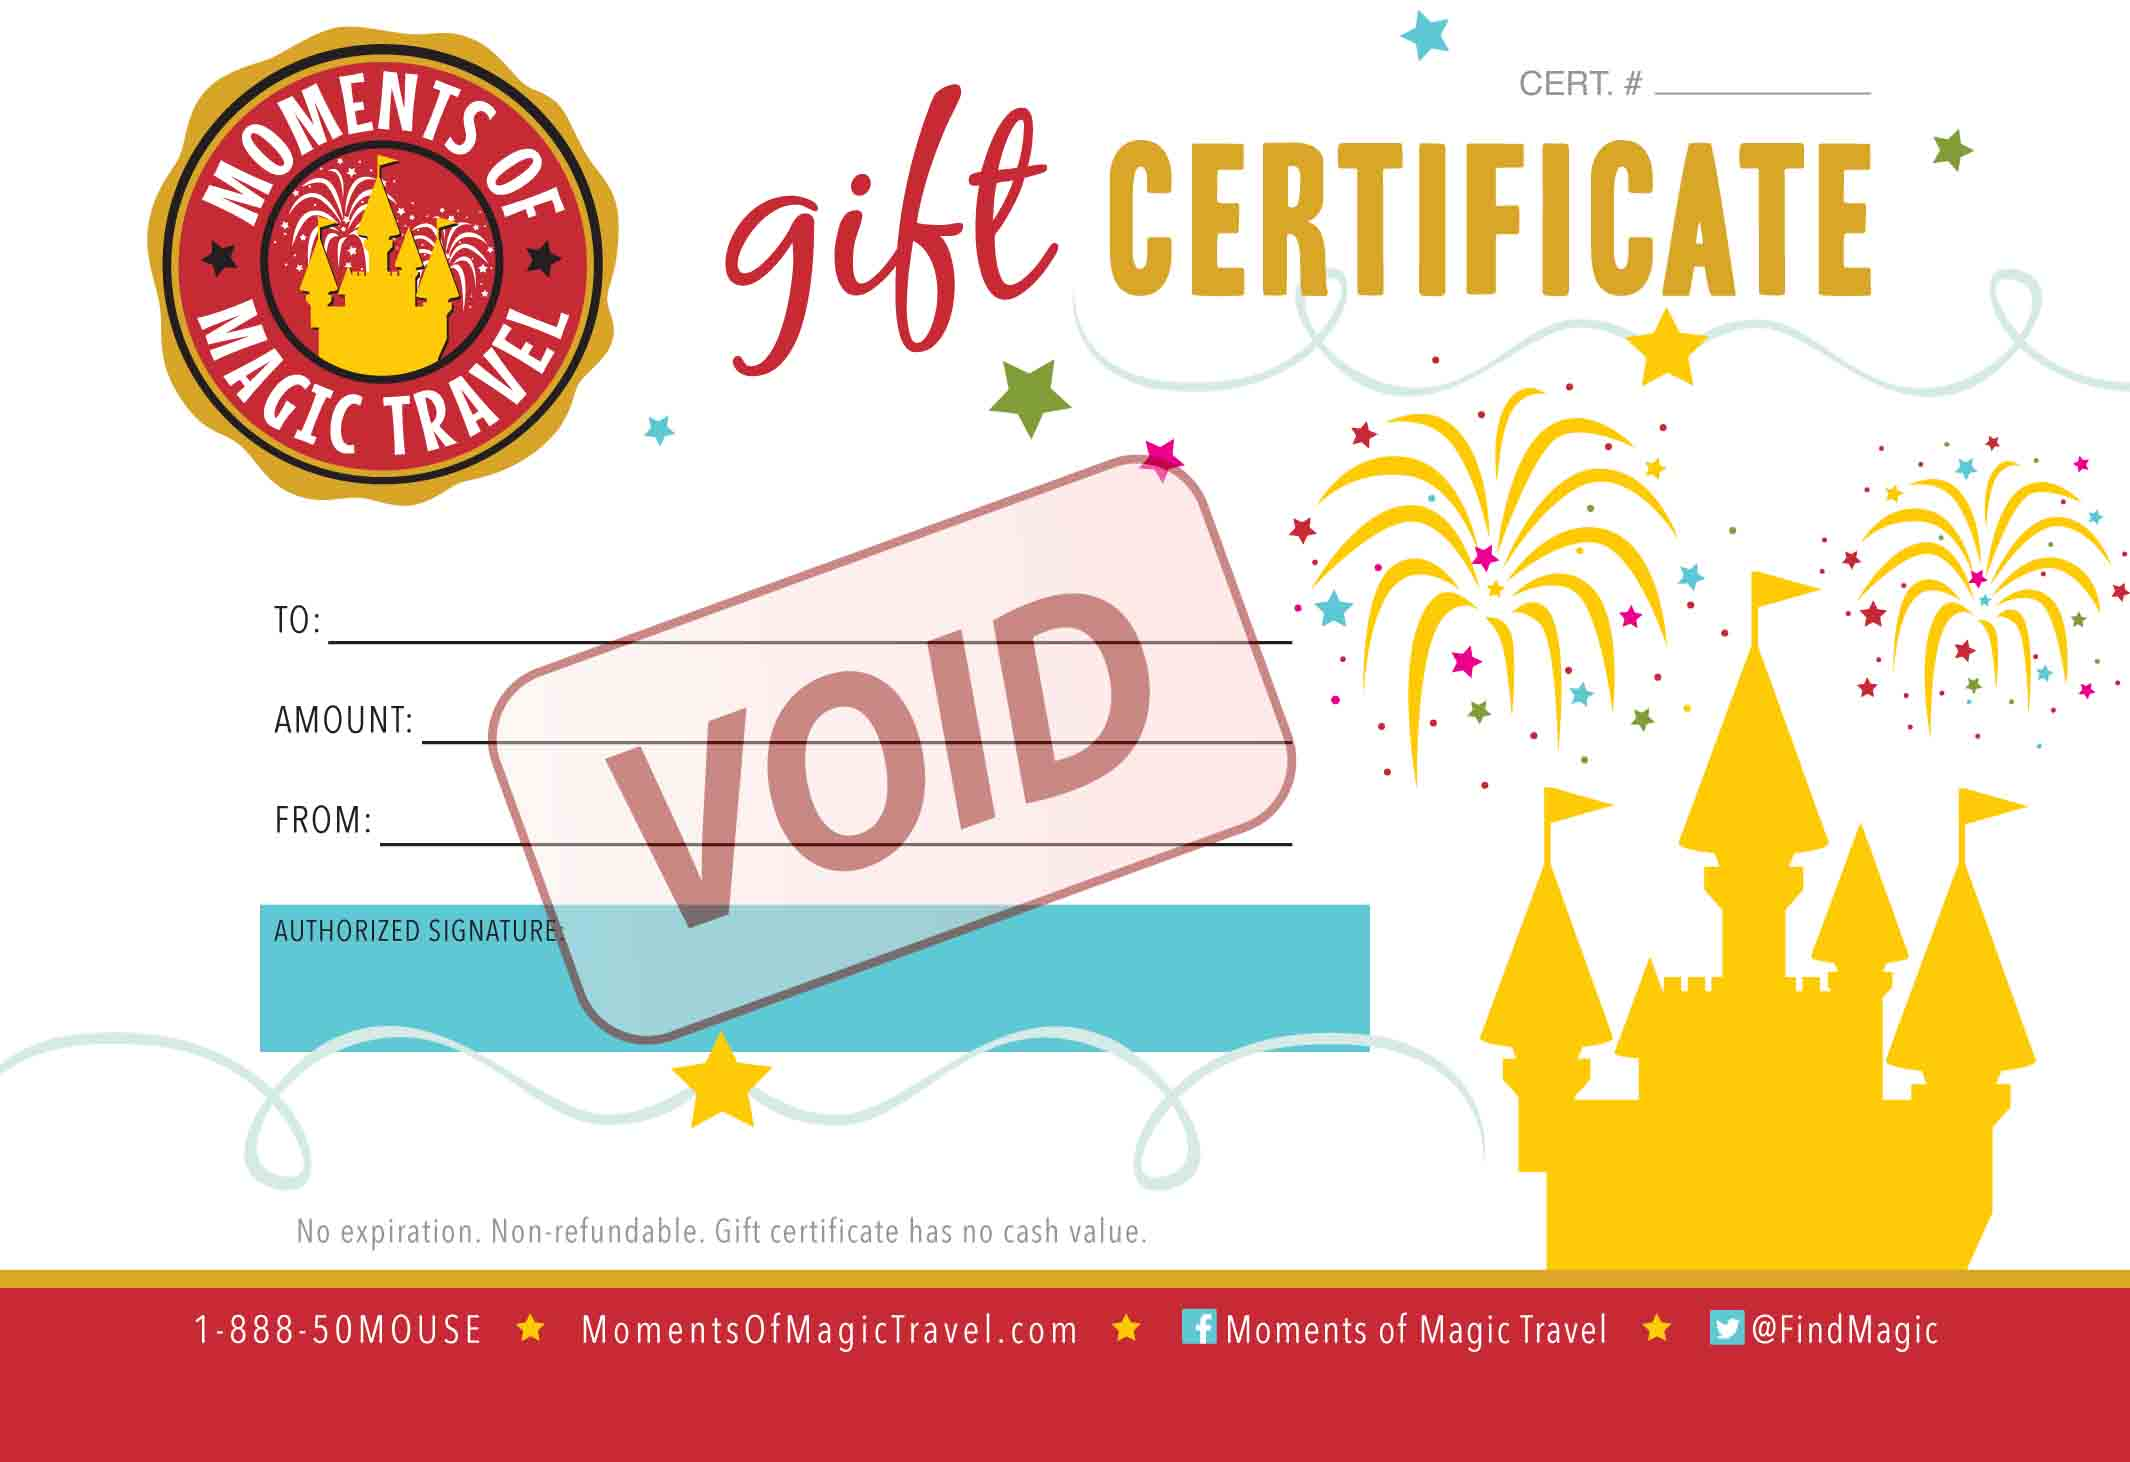 Free gift certificate offer cyber monday deal moments of magic giftcertificatesample yadclub Choice Image